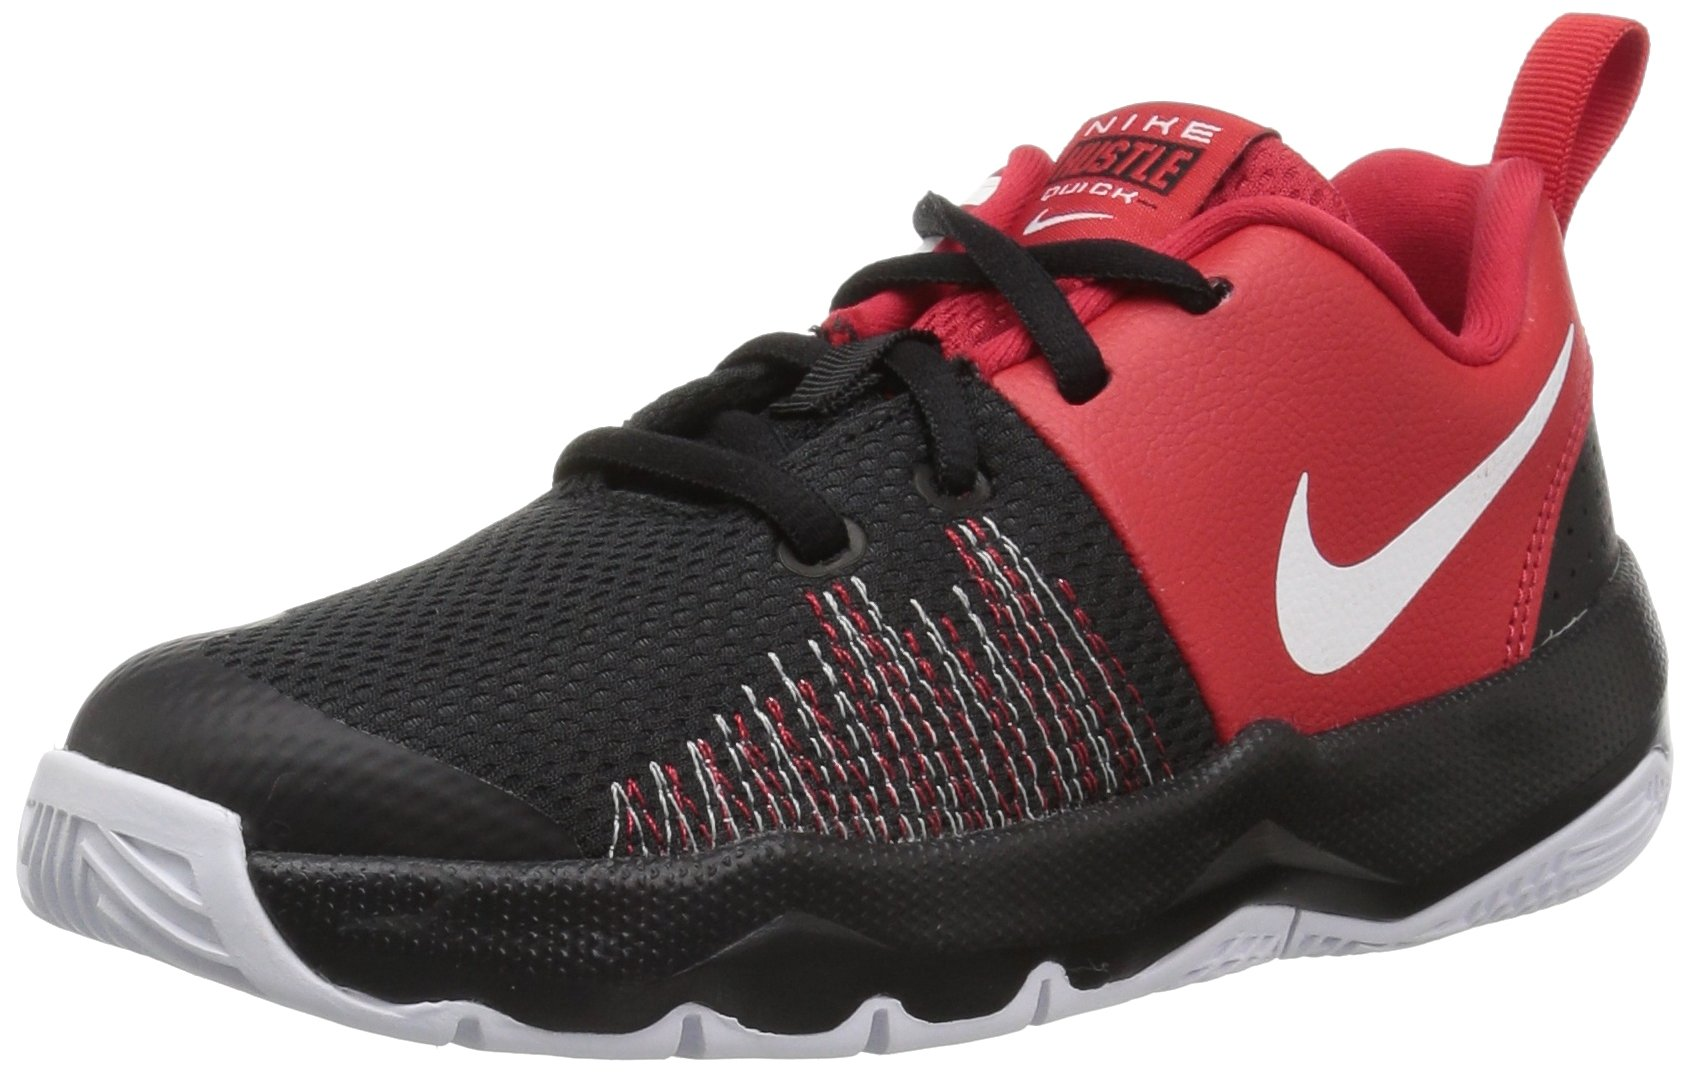 Nike Boys' Team Hustle Quick (PS) Basketball Shoe, Black/White - University red, 2.5 M US Little Kid